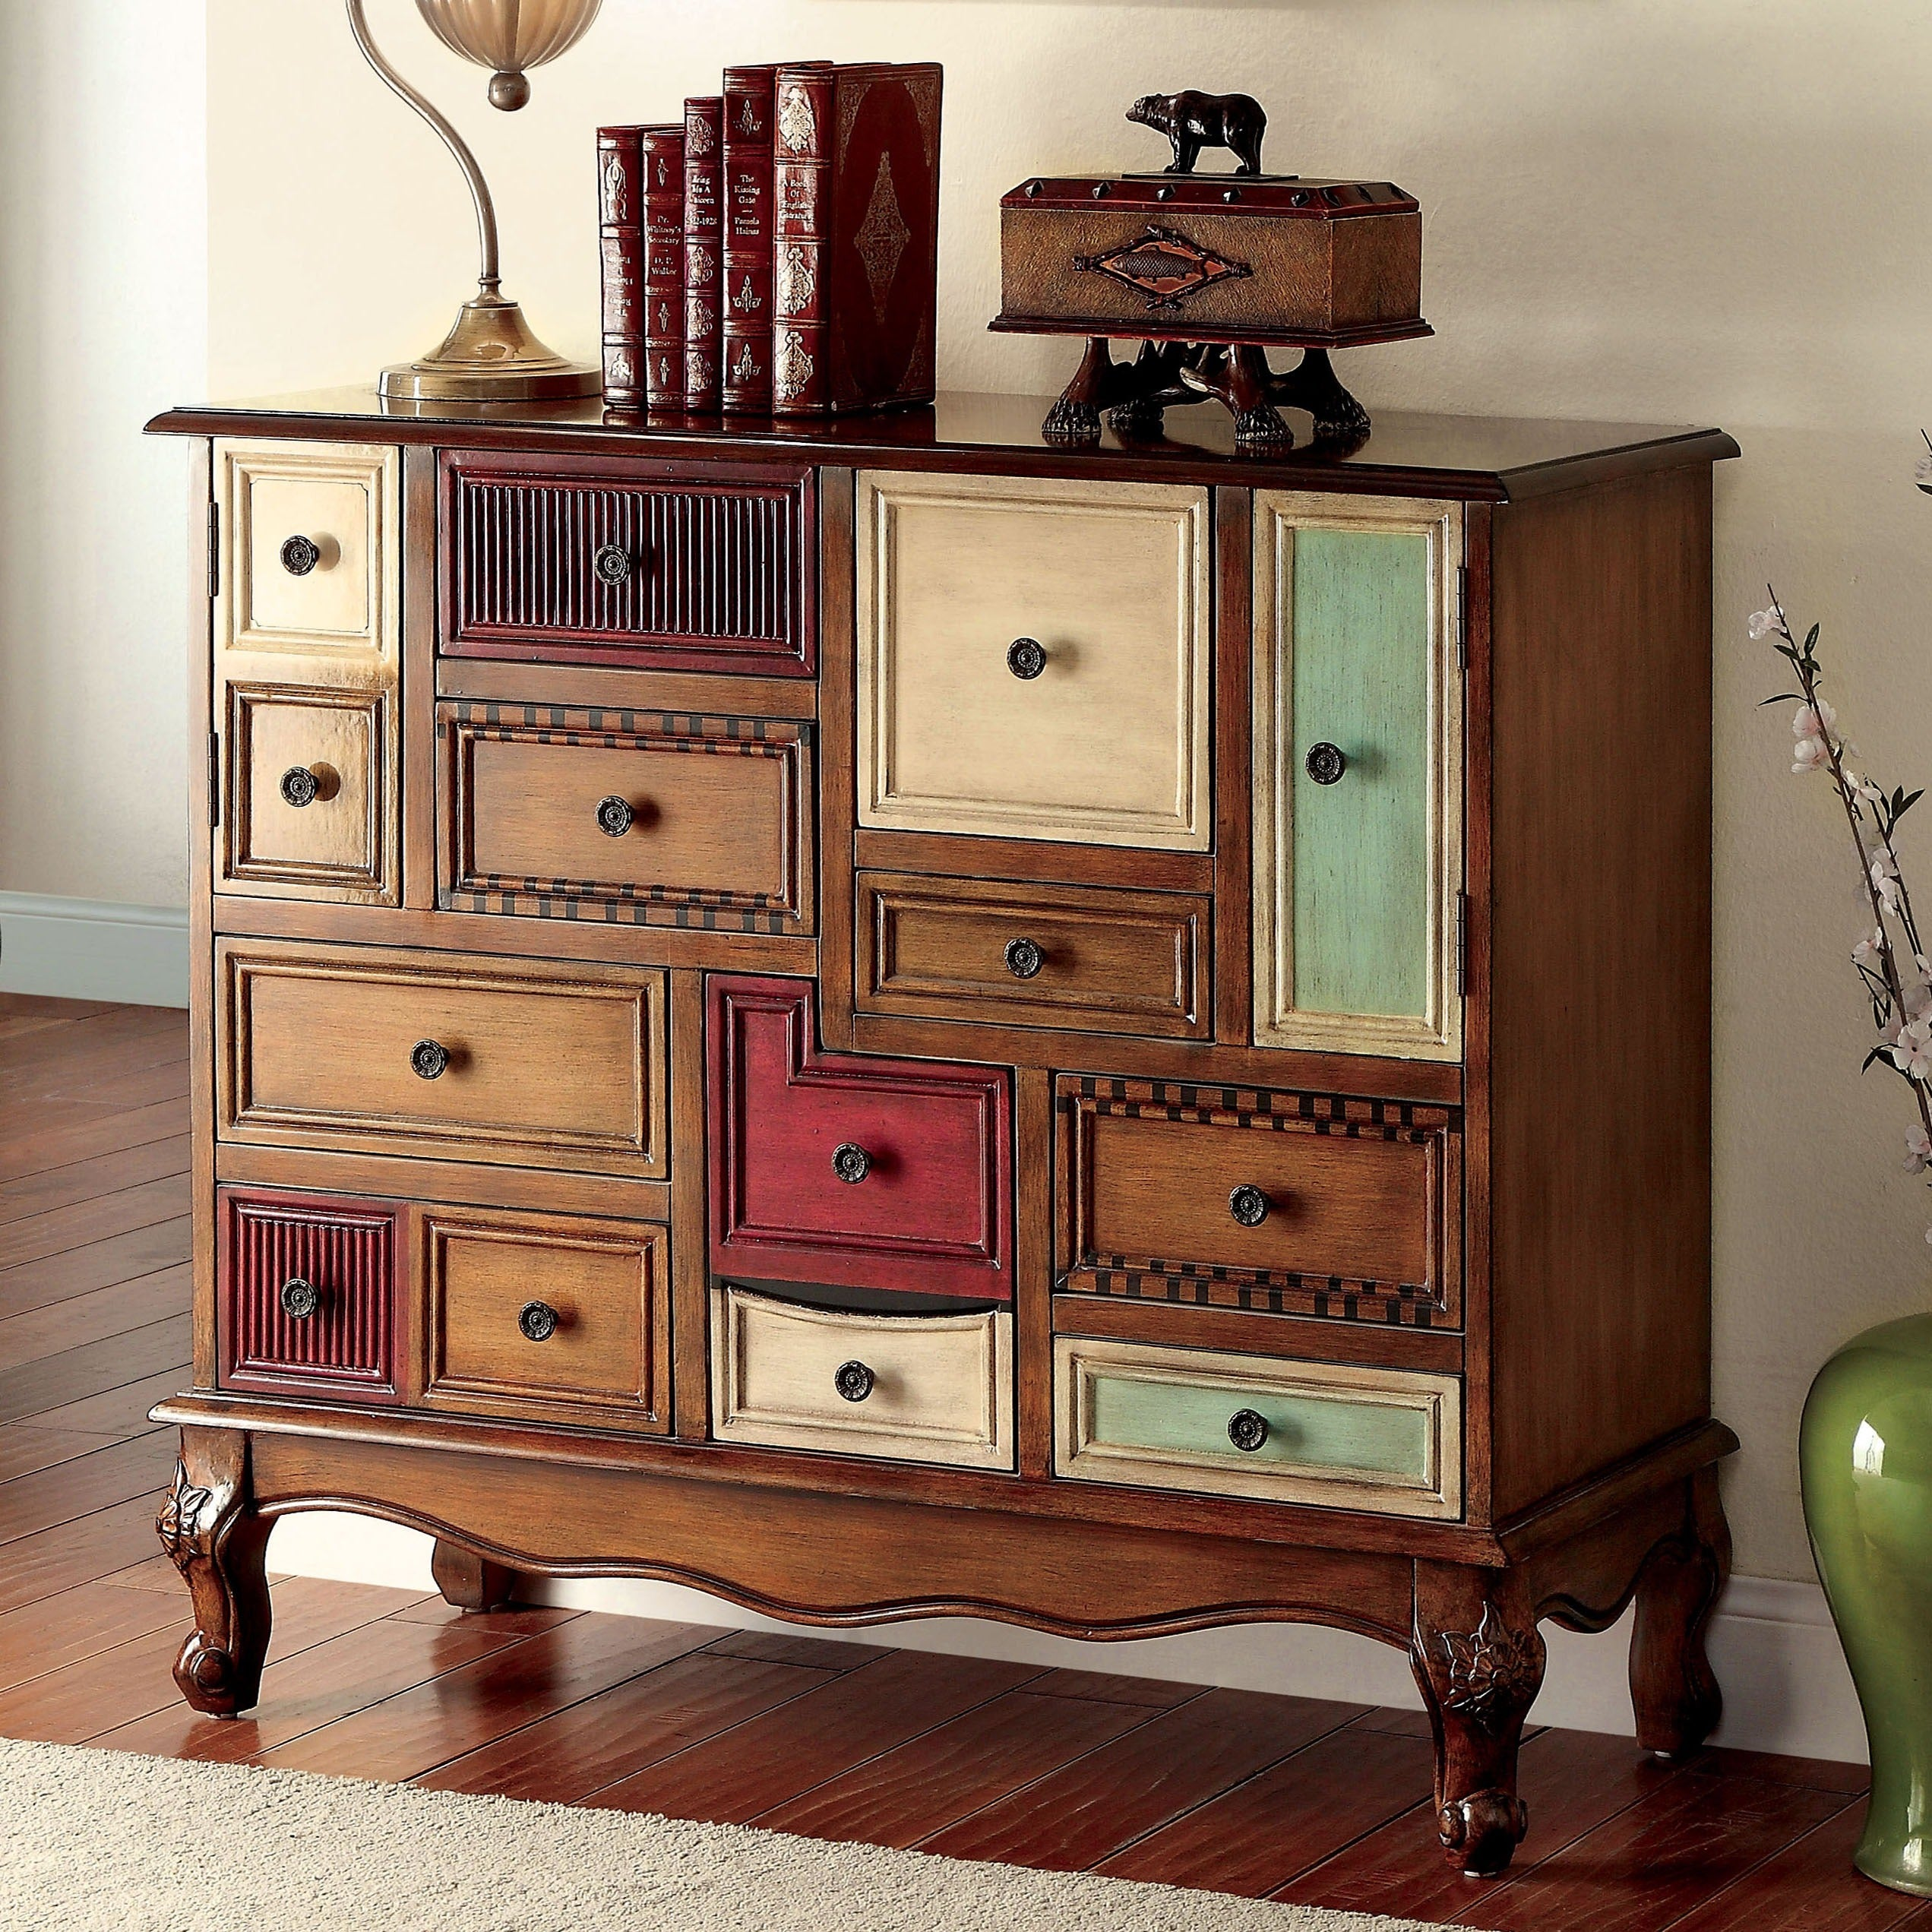 Furniture of america cirque antique walnut wood accent chest